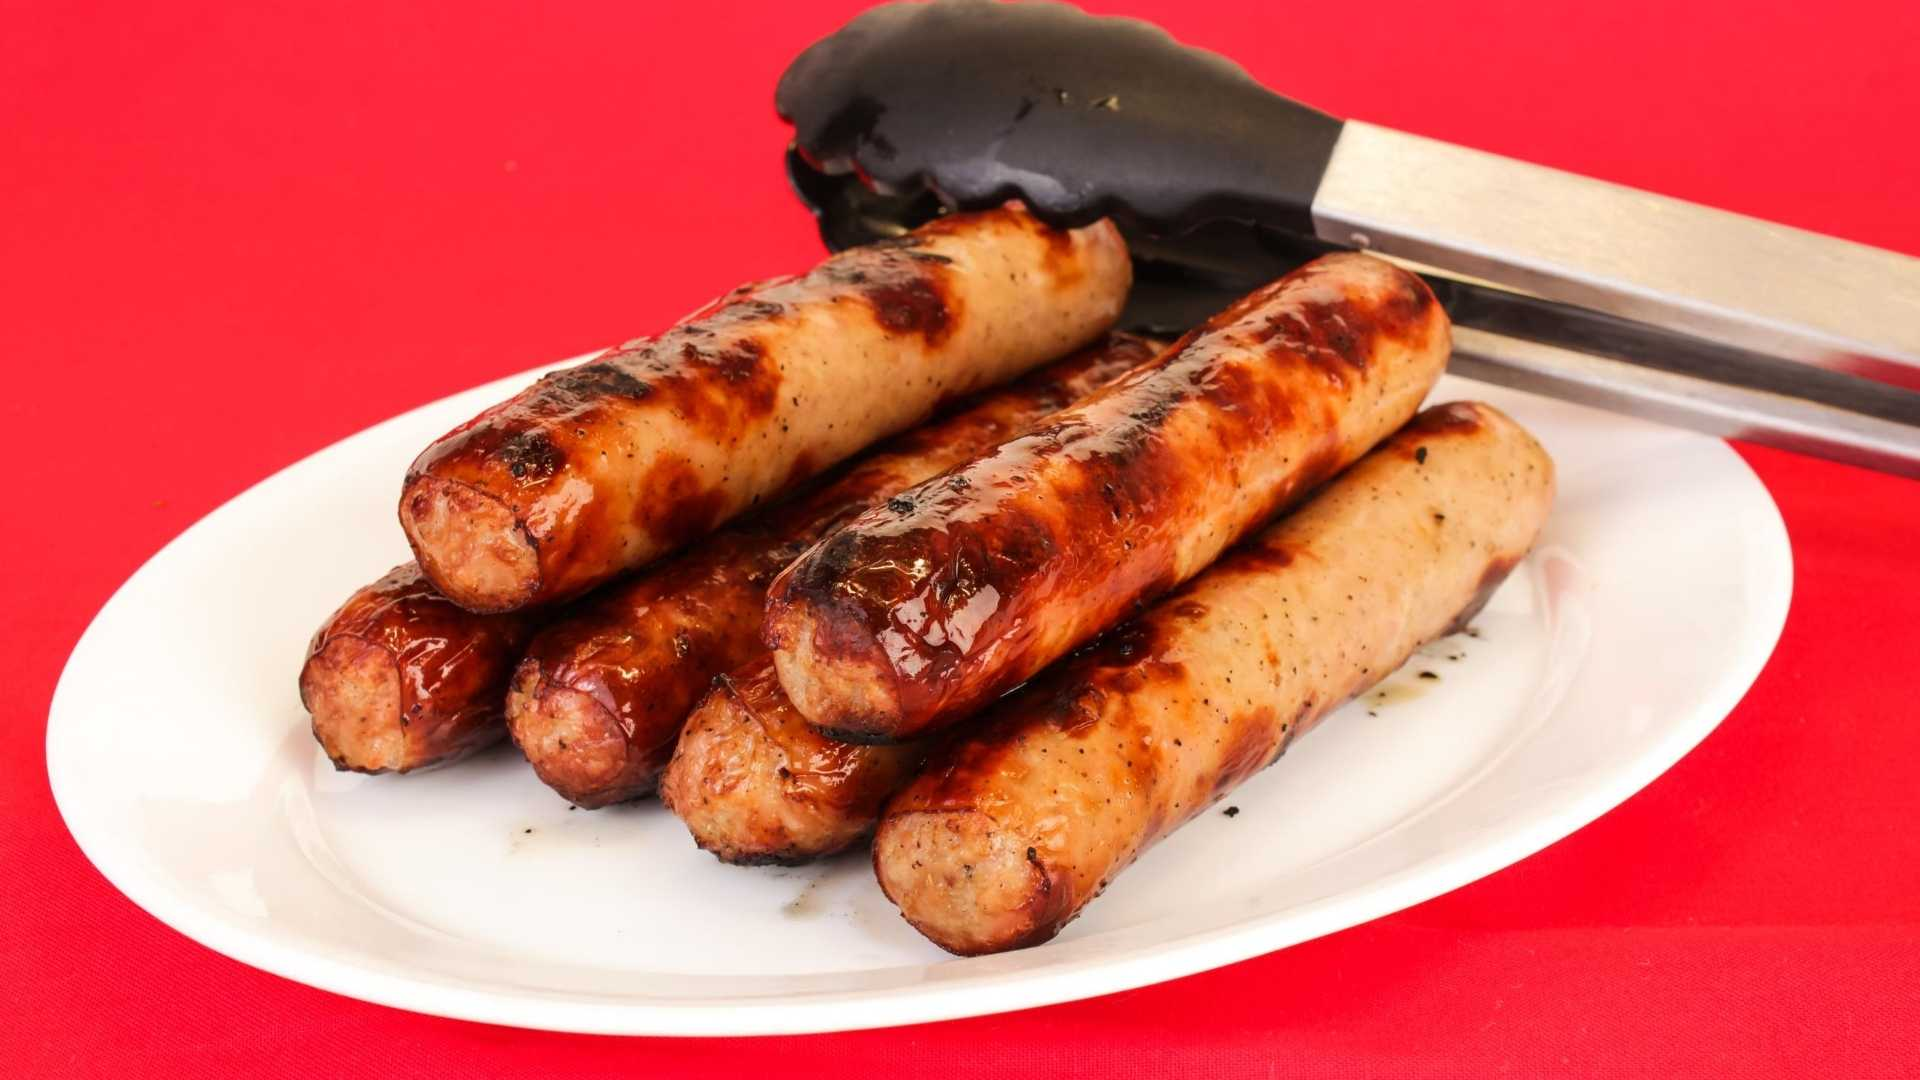 How Long To Cook Brats in Air Fryer